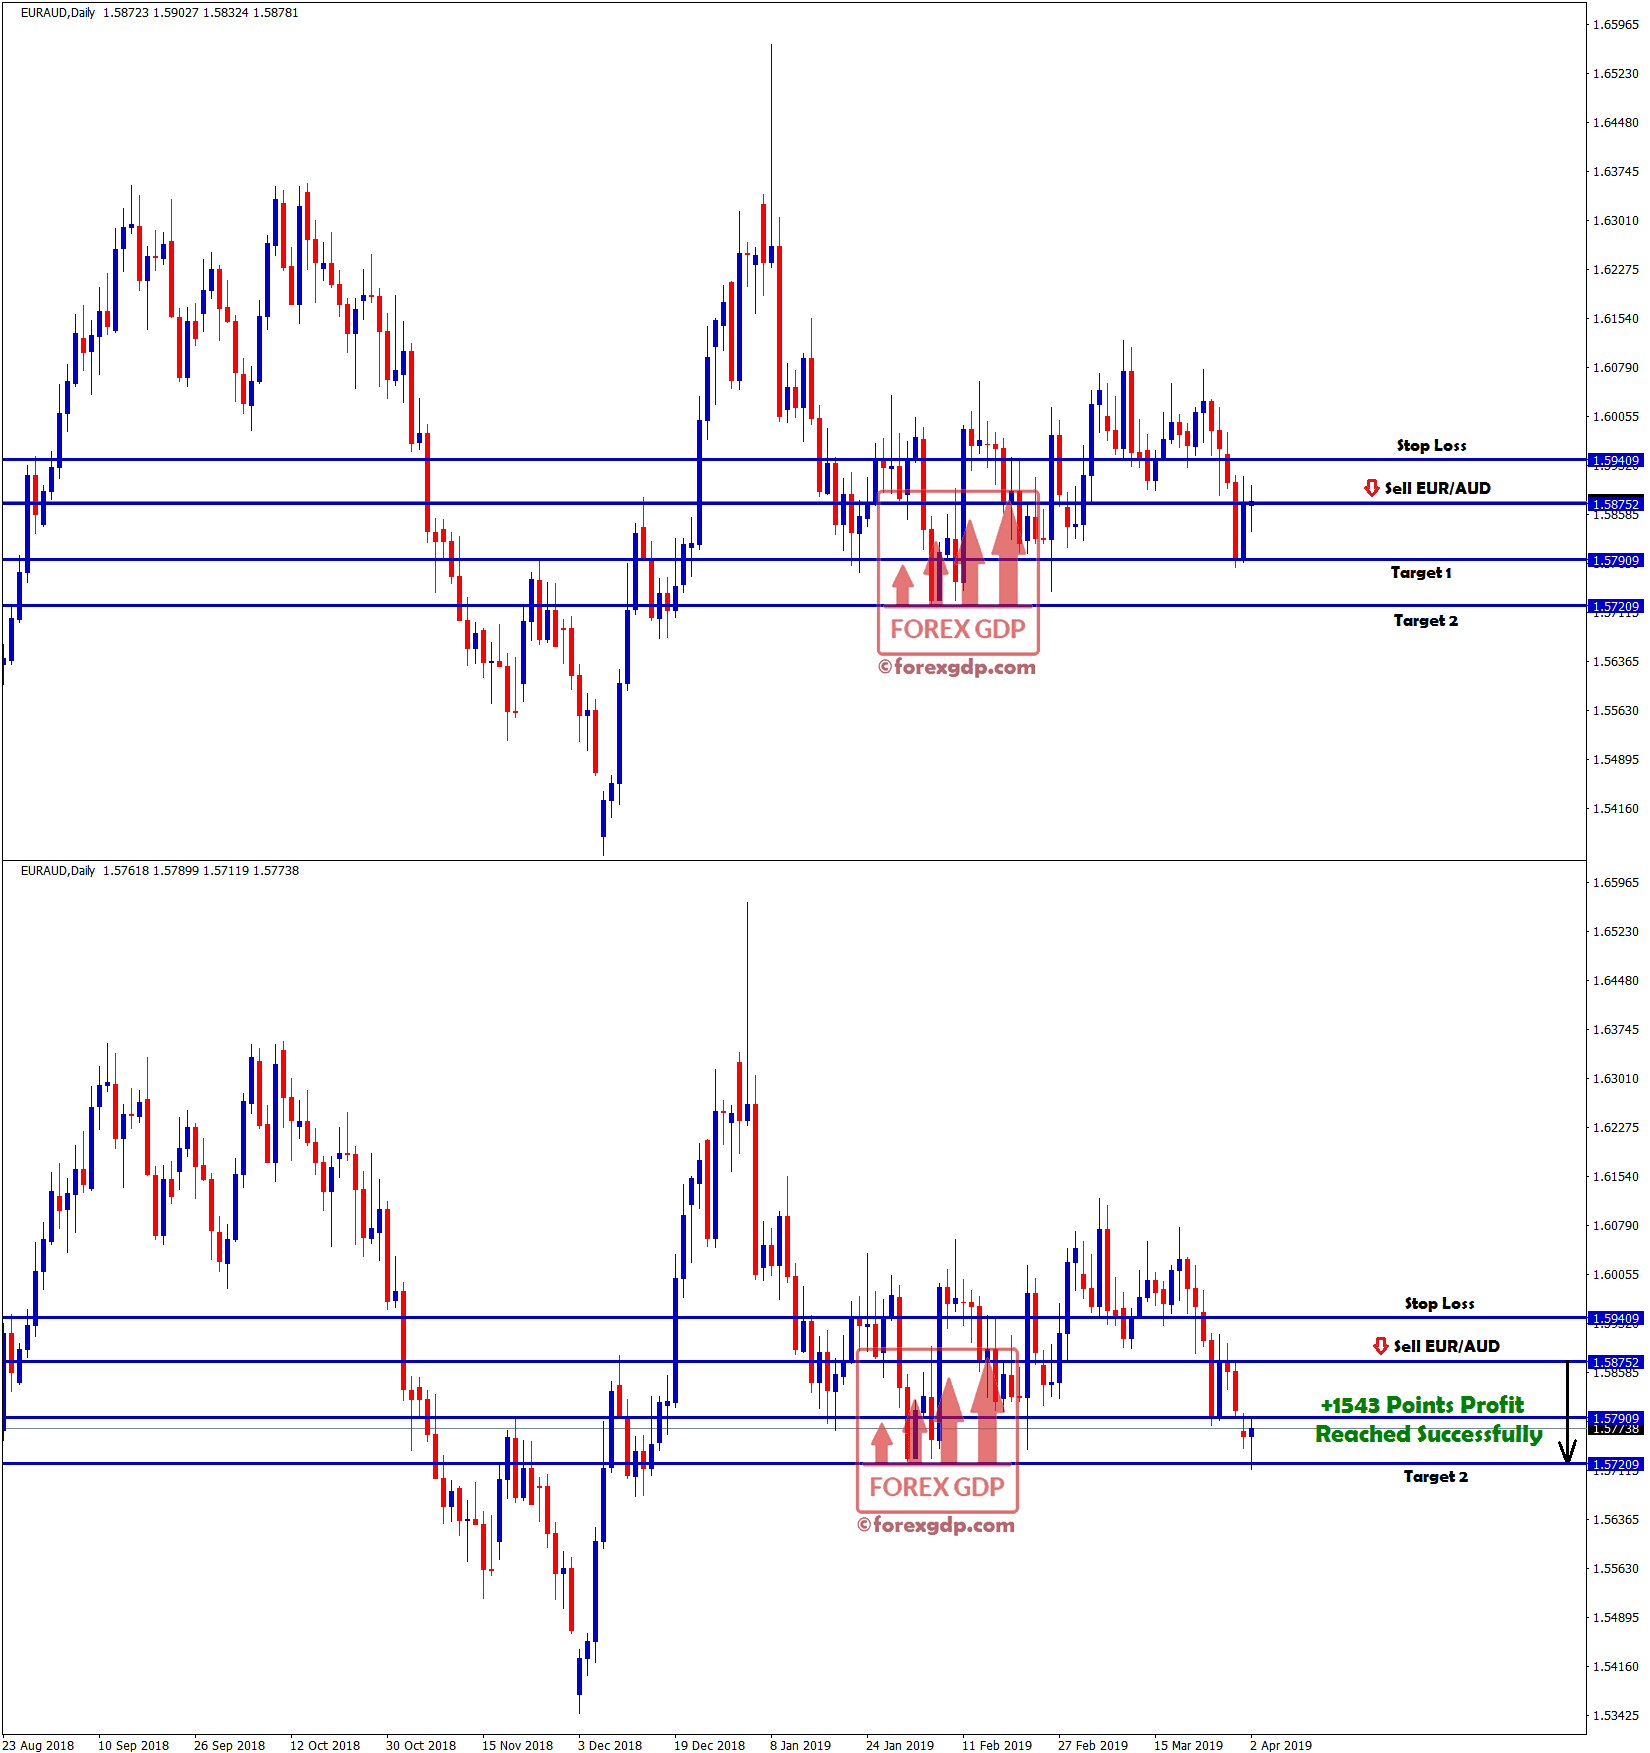 eur/aud sell signal hit the target 2 in daily chart